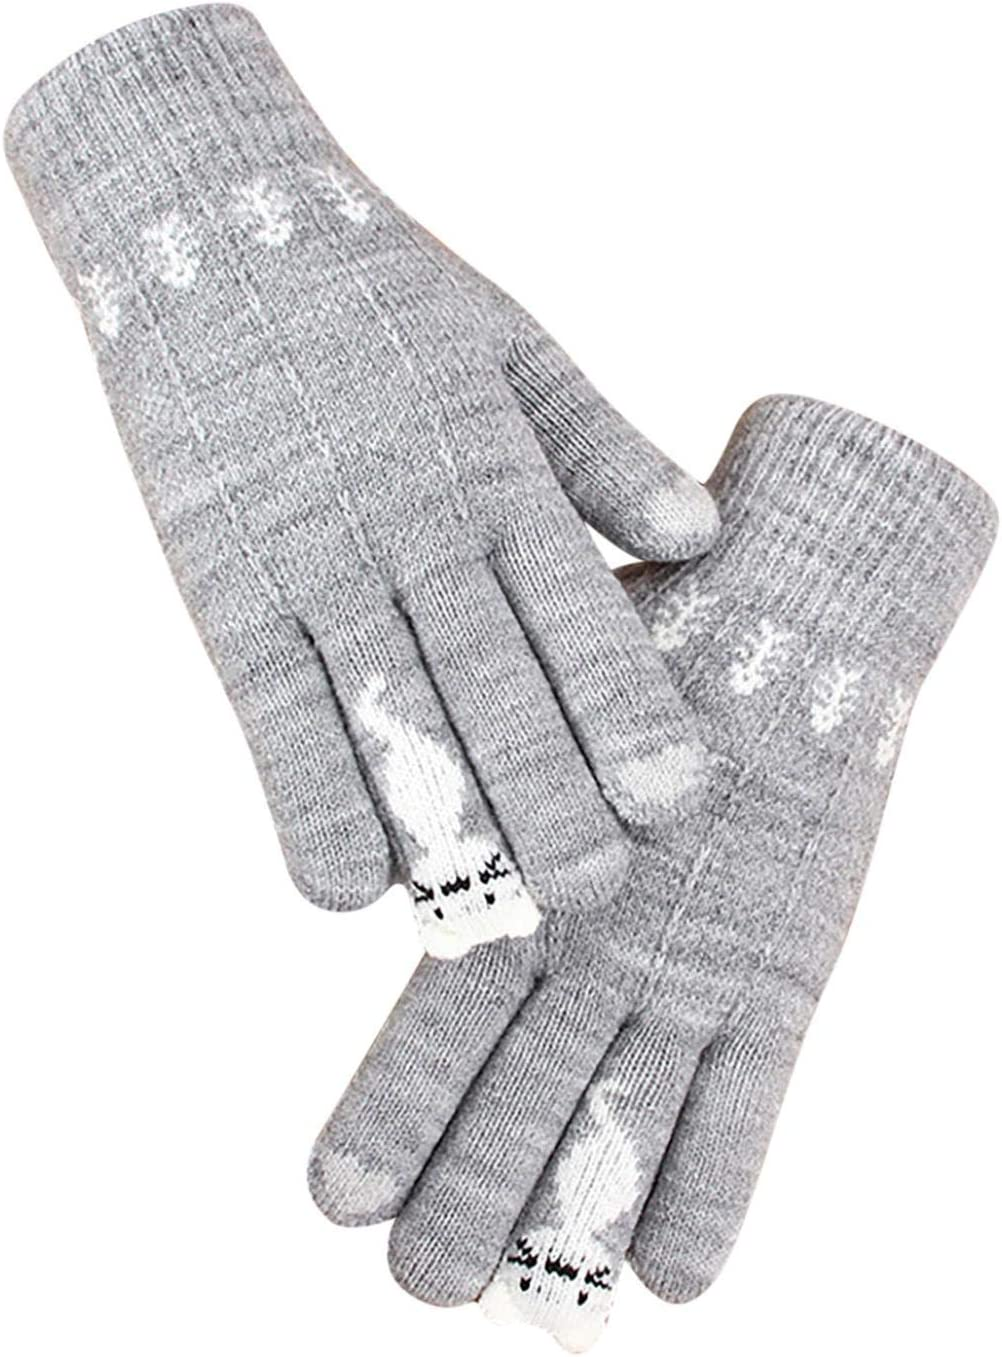 Baoshu Ladies Winter Kitten Glove Single Layer Warm Thick Knitted Touch Screen Gloves Full Fingers Cold-Proof Mitten (Gray)